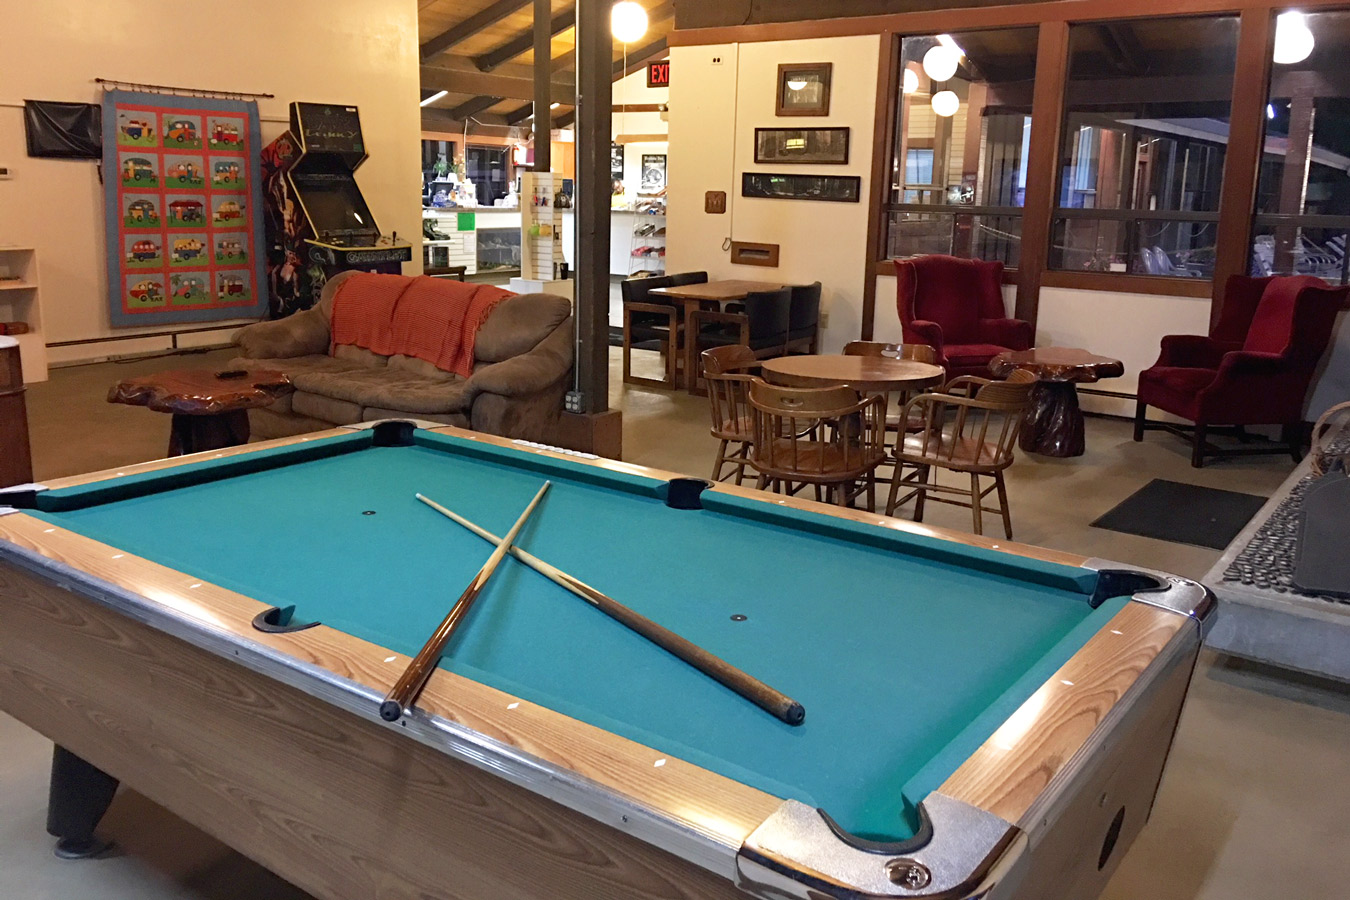 banner image is of Benbow KOA Game Room pool table and arcade